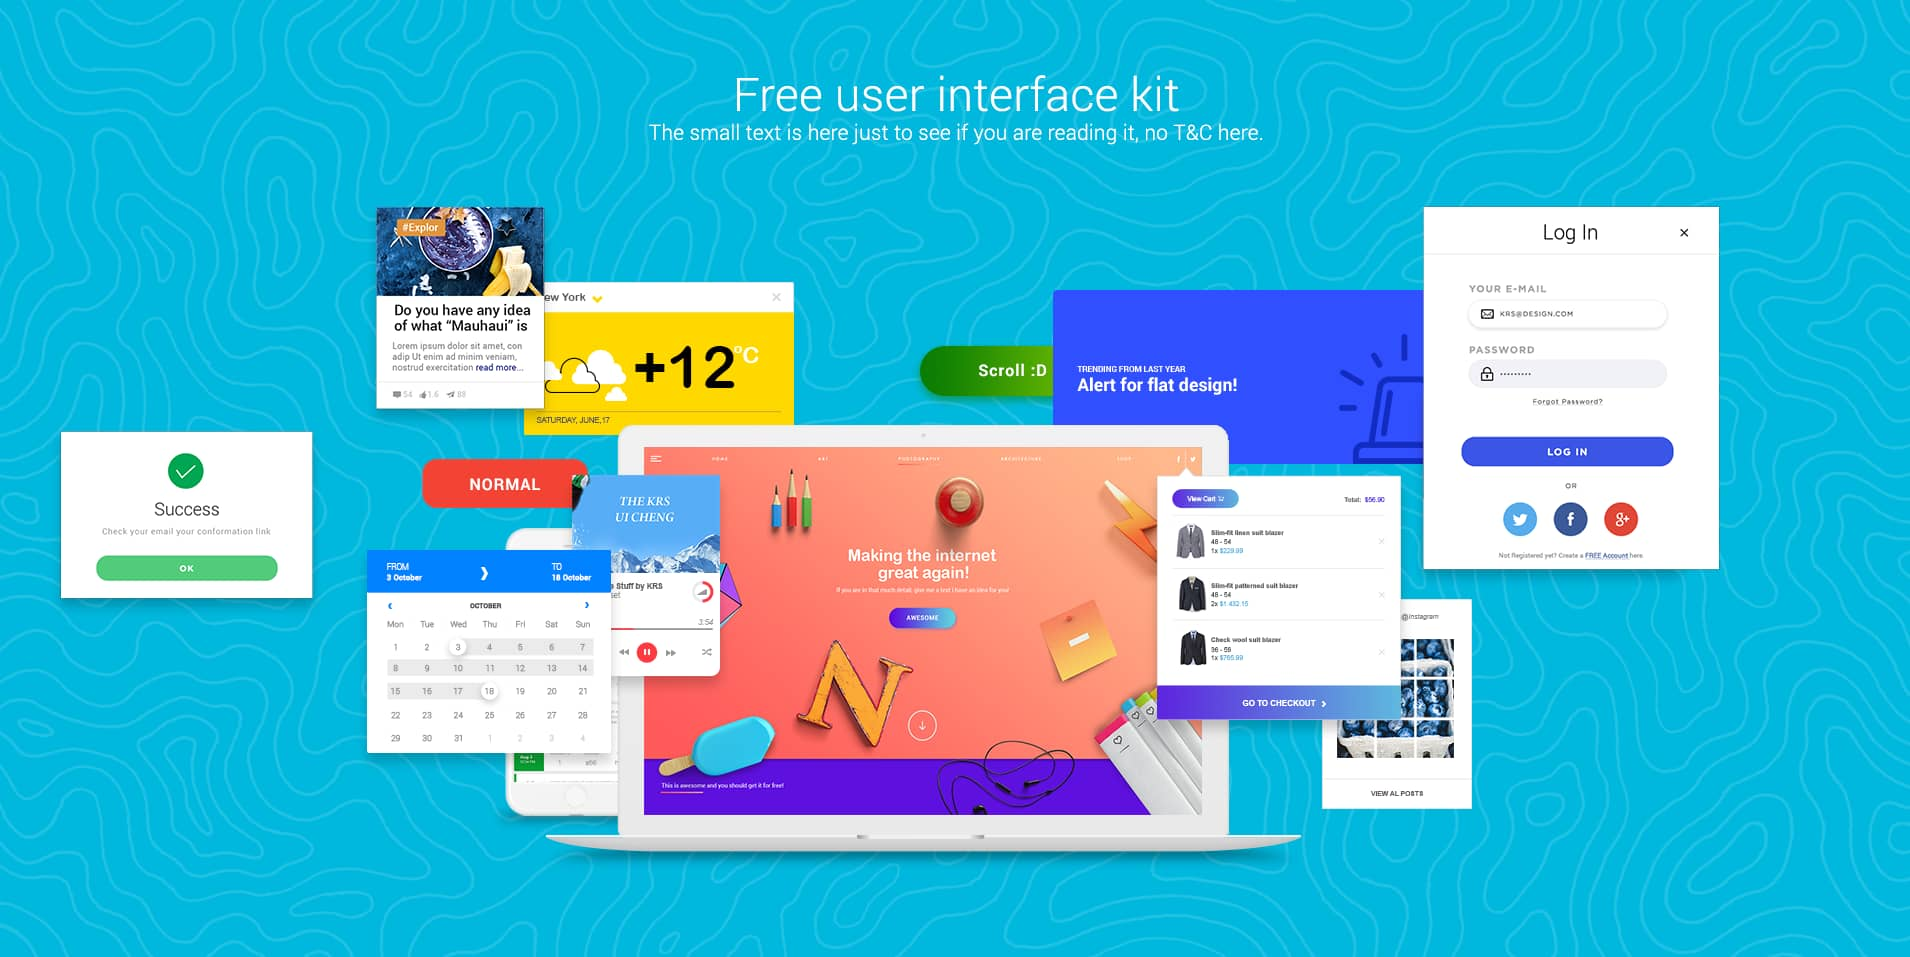 Colorful UI kit. Free user interface kit with 1000 pixel perfect UI components for download free.